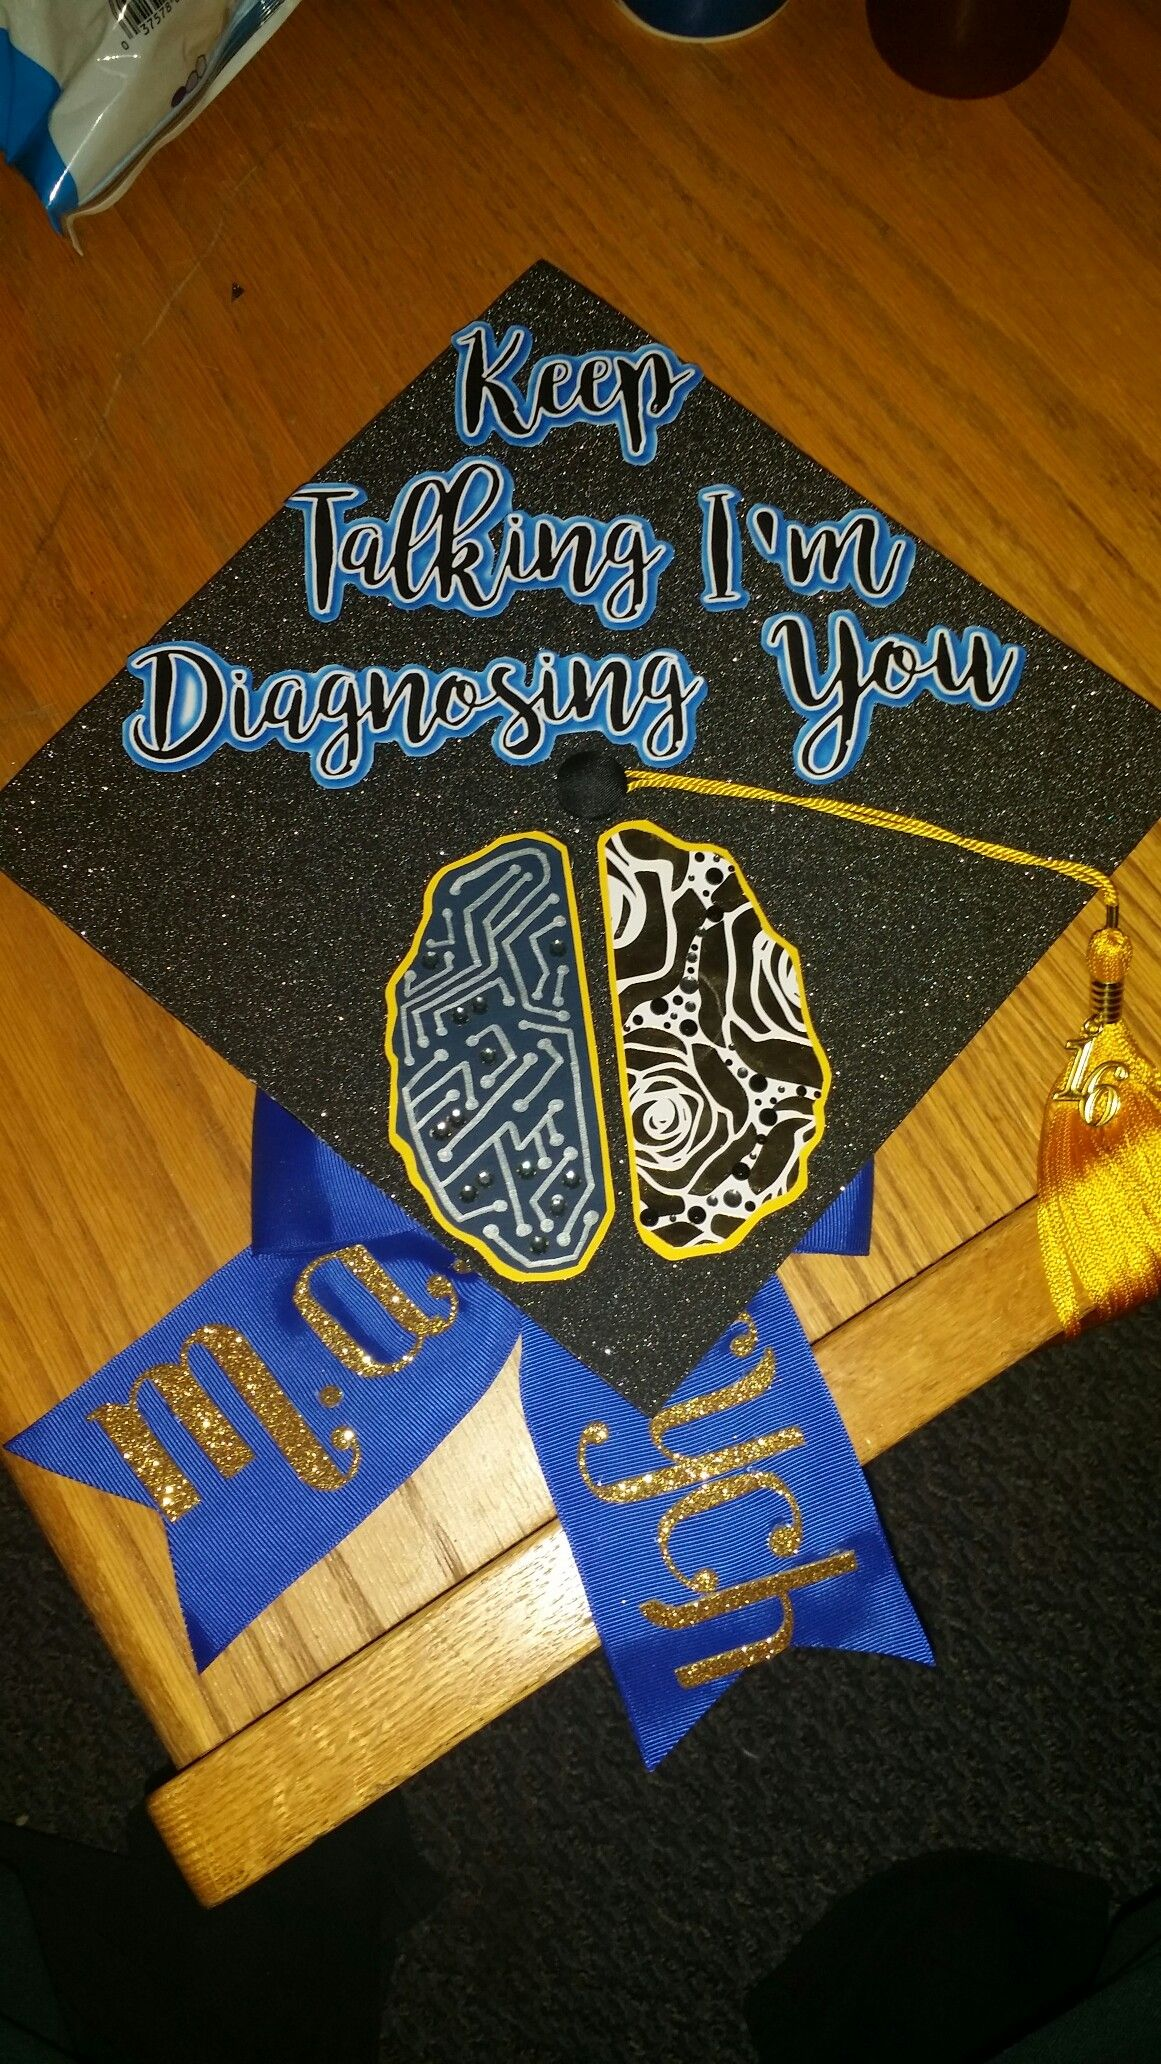 Bachelors in psychology graduation cap 2016 created by